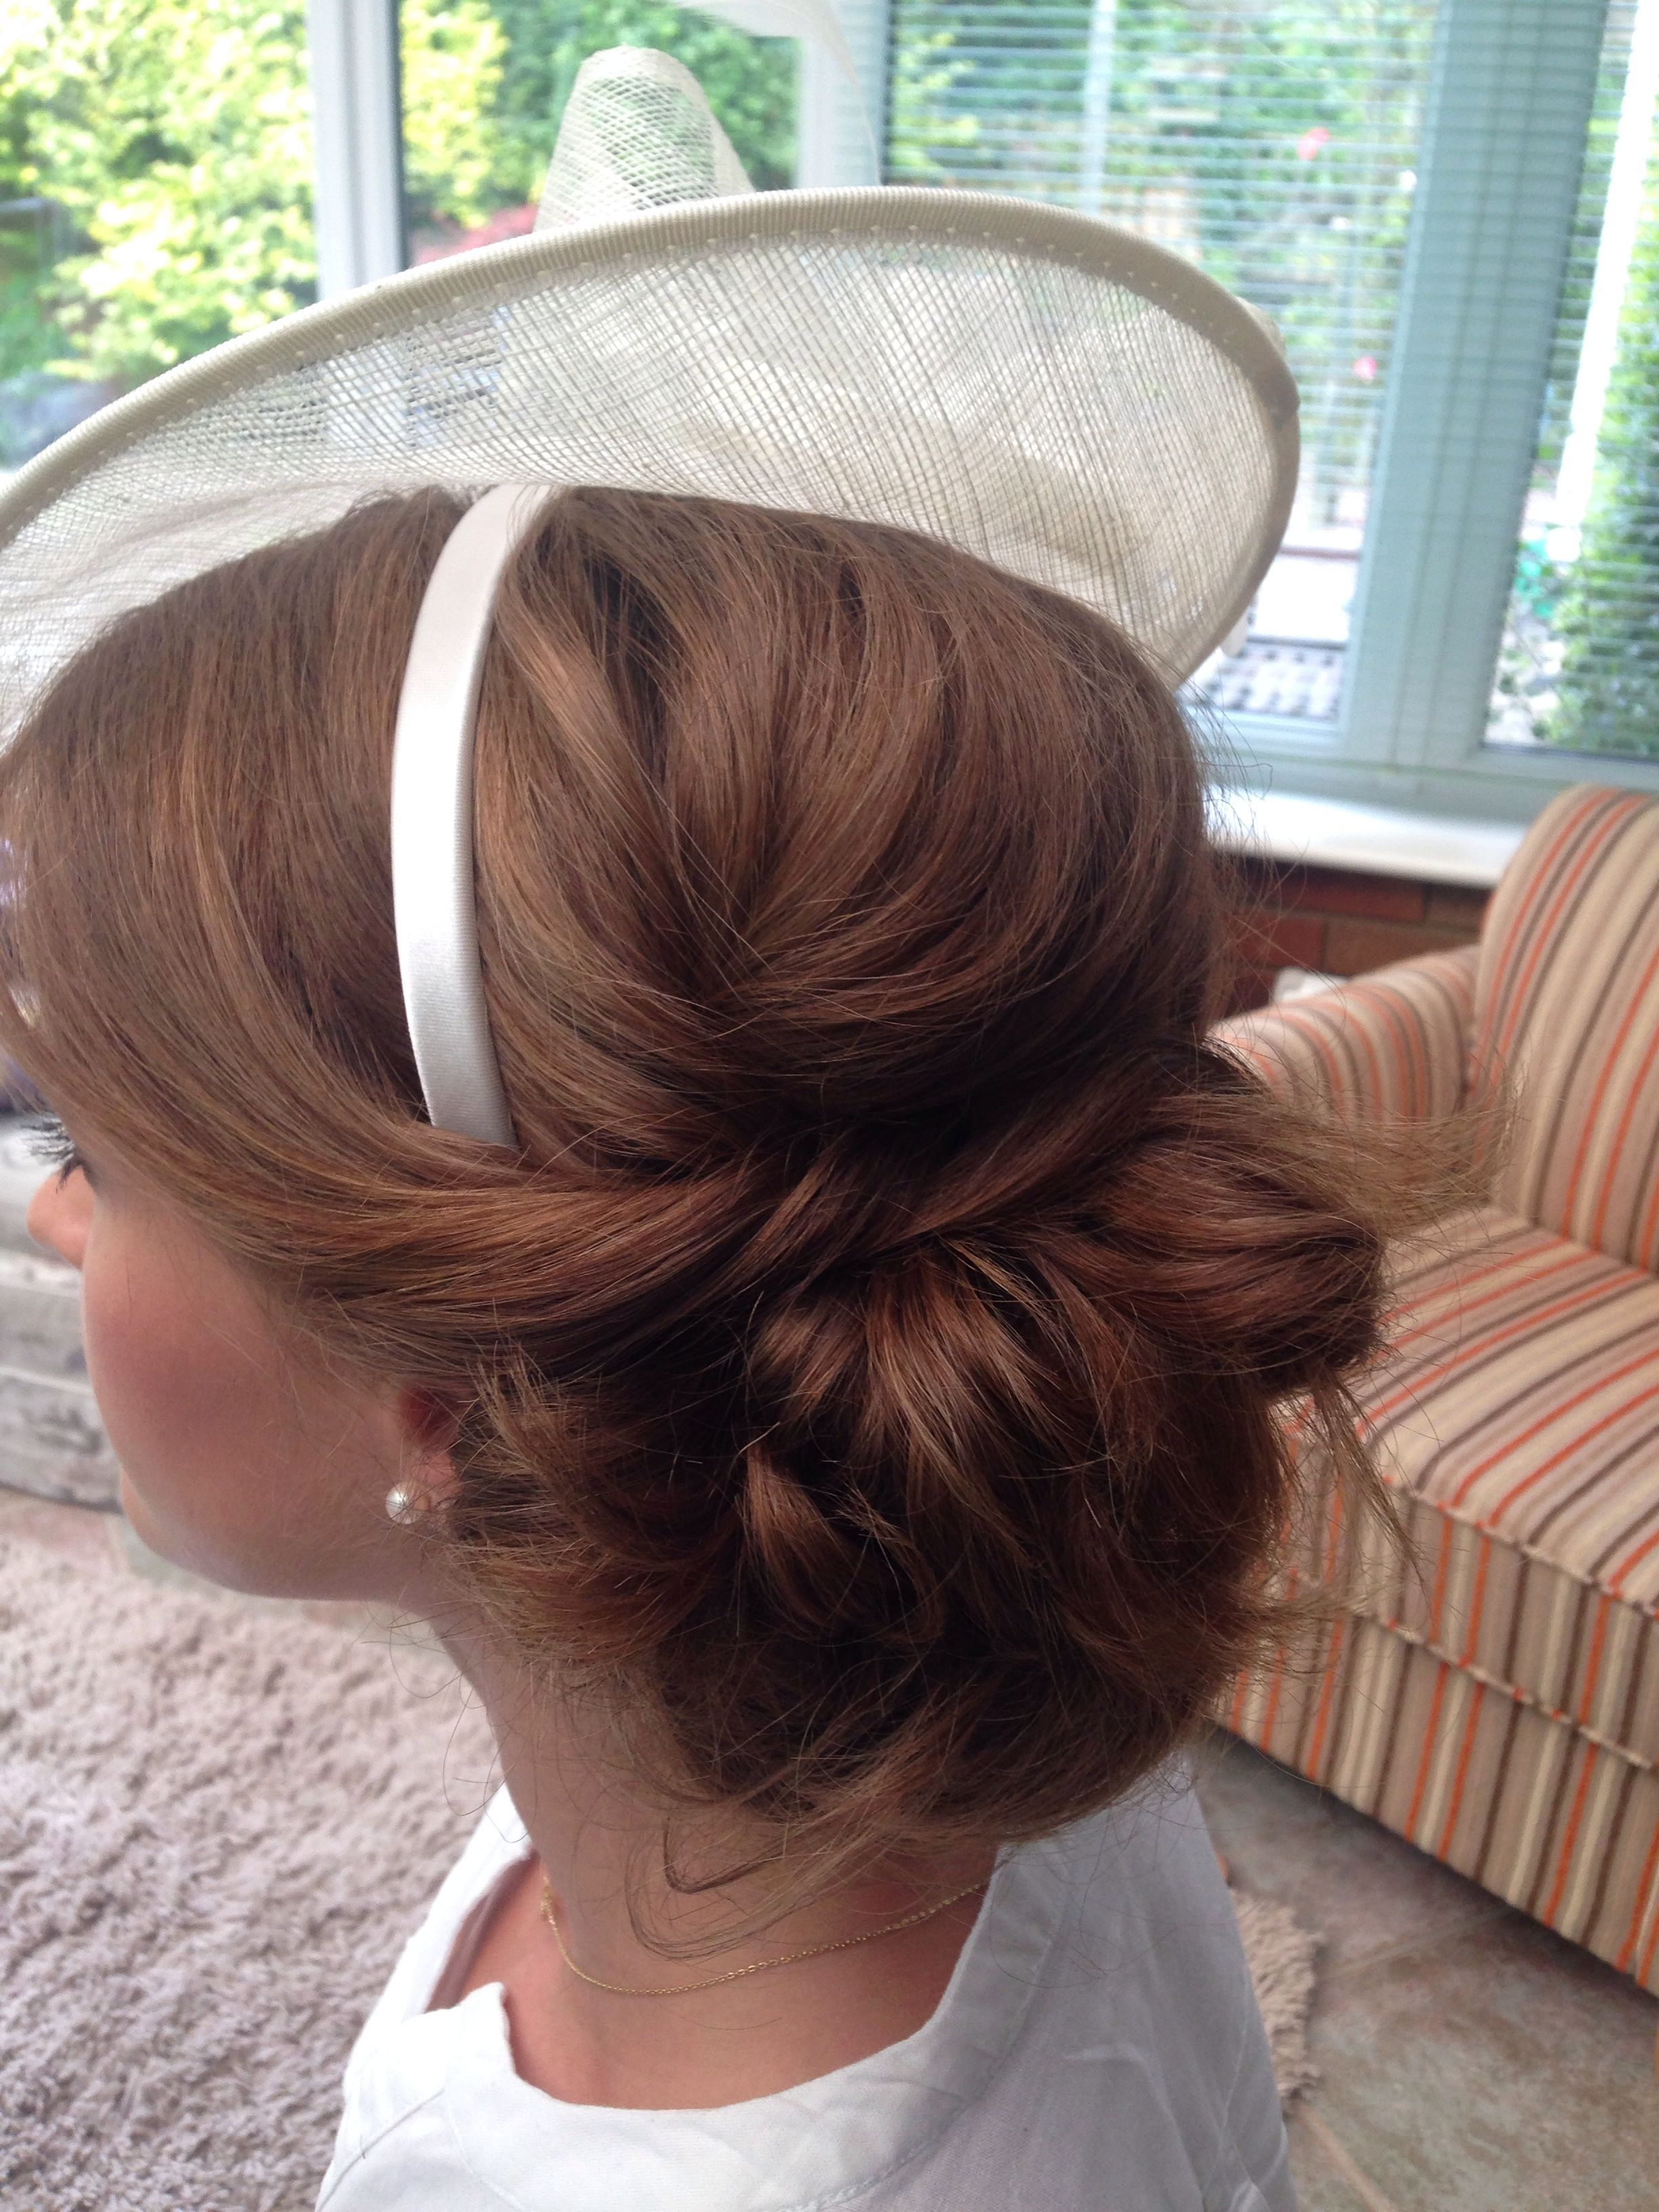 best mother of the bride hairstyles (wearing a hat or